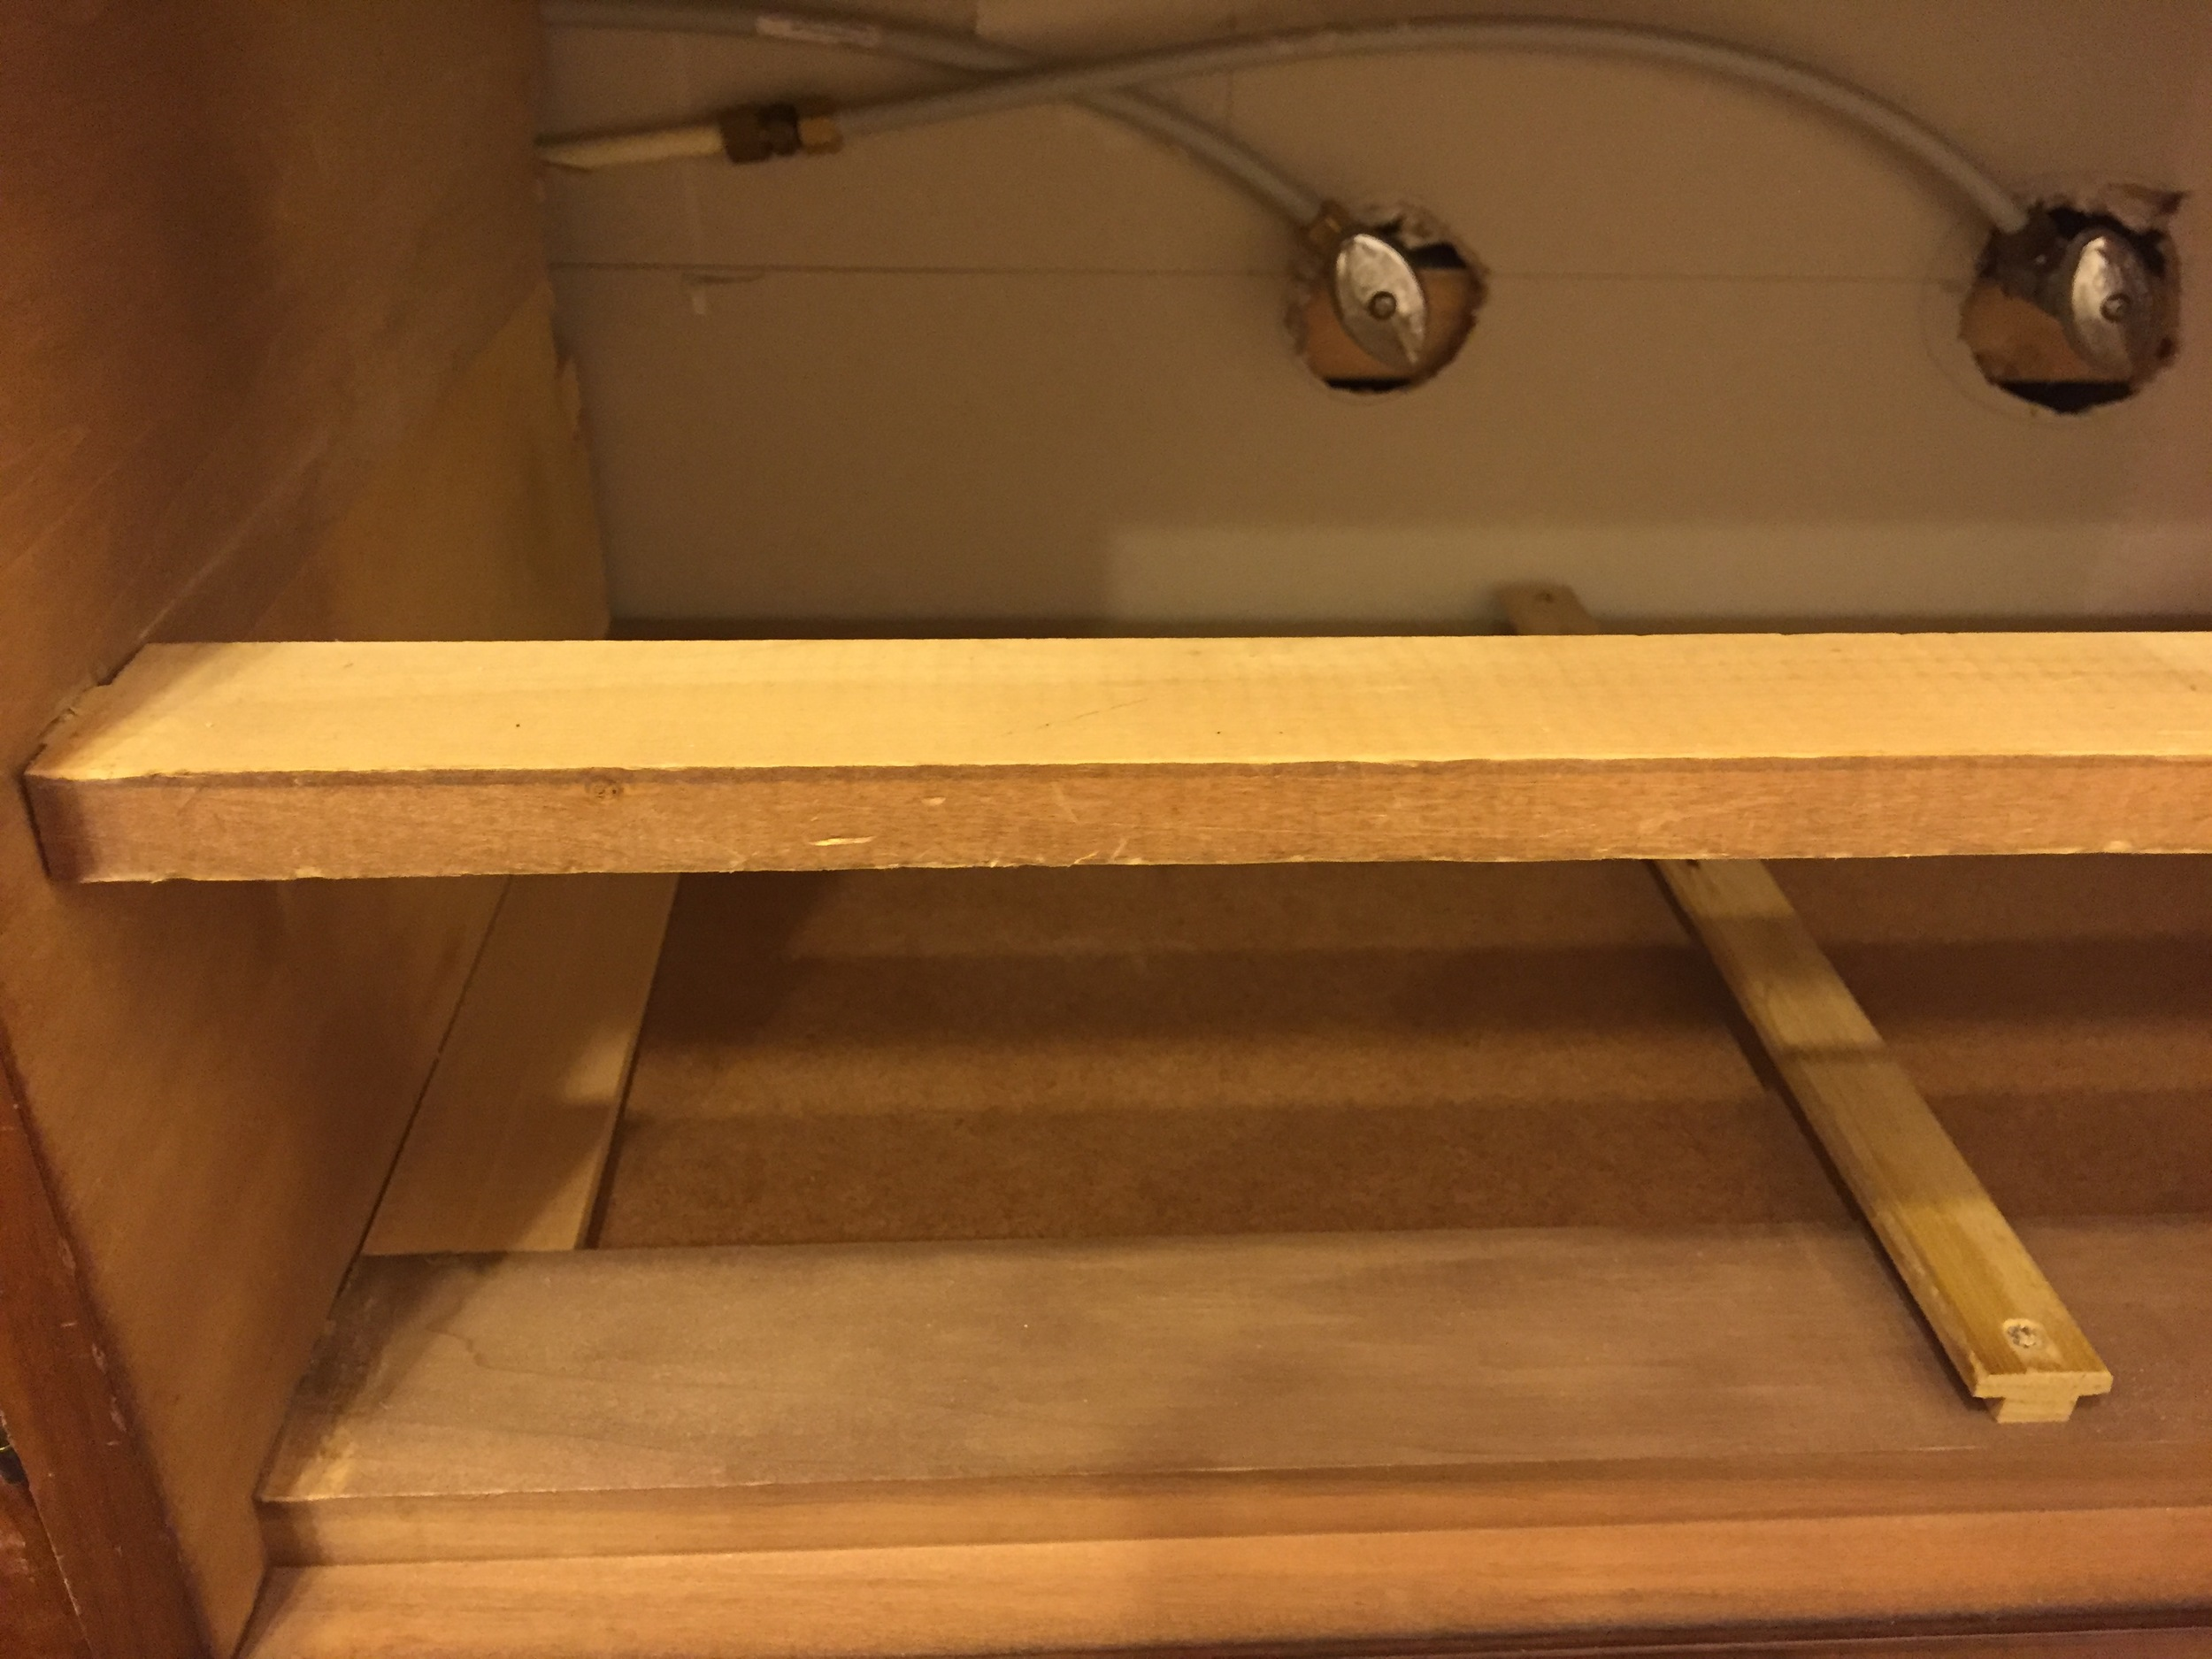 In order to make remove for the those water shut off valves, we had to completely remove the side and back drawer support rails for the middle drawer. See how there's only a front rail remaining?